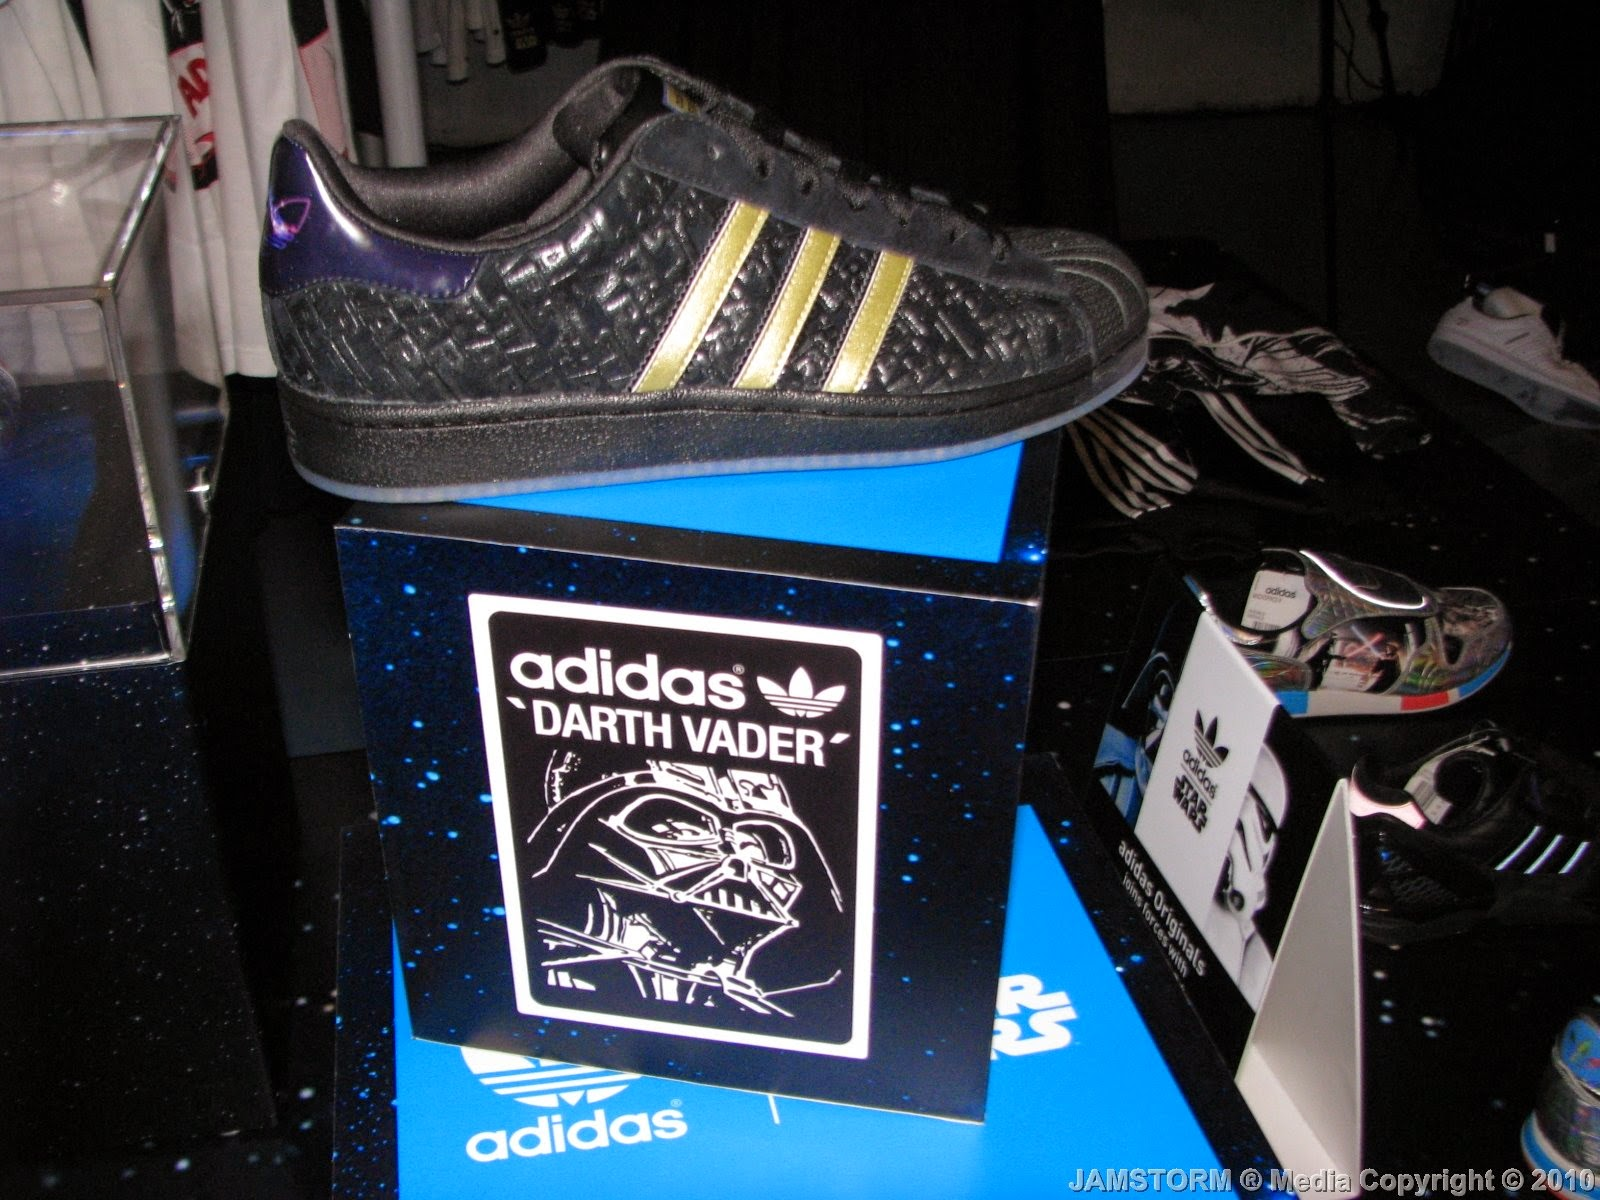 adidas Originals x Star Wars collaboration launched shoes and apparel  presented by models that walked wearing them. For more coverage check out  these images ... 026b0672fb